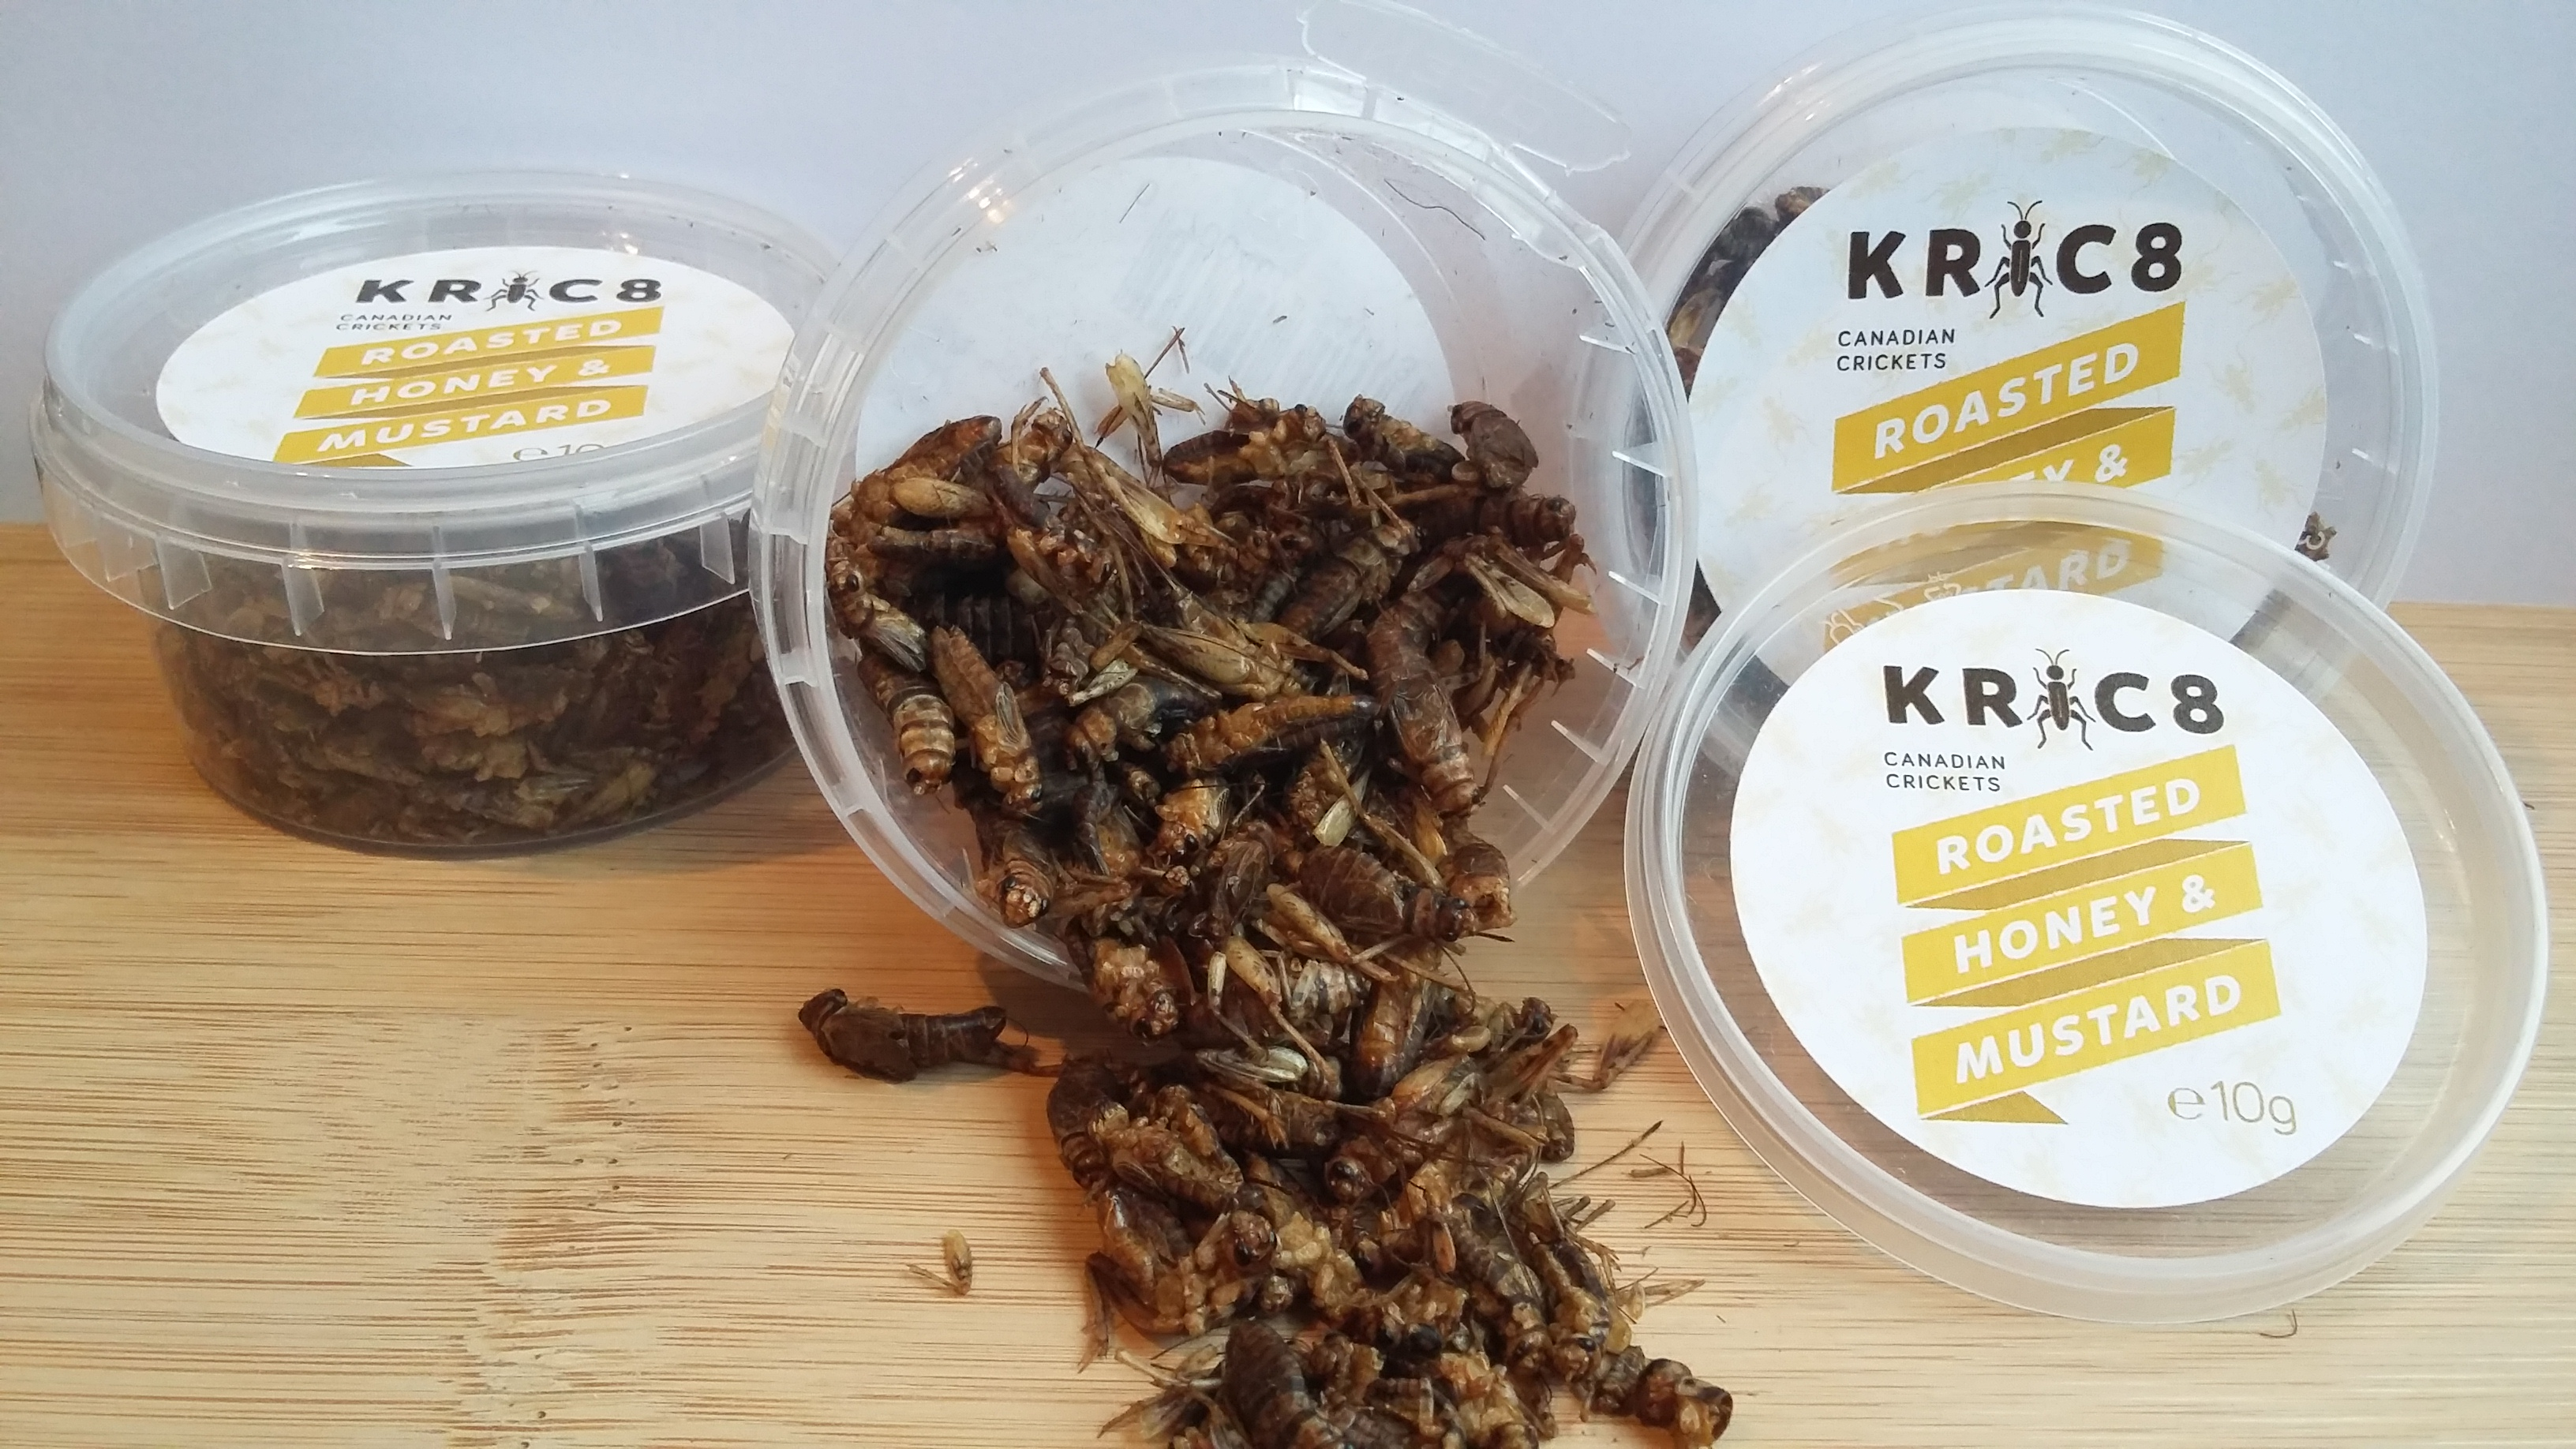 honey & mustard crickets